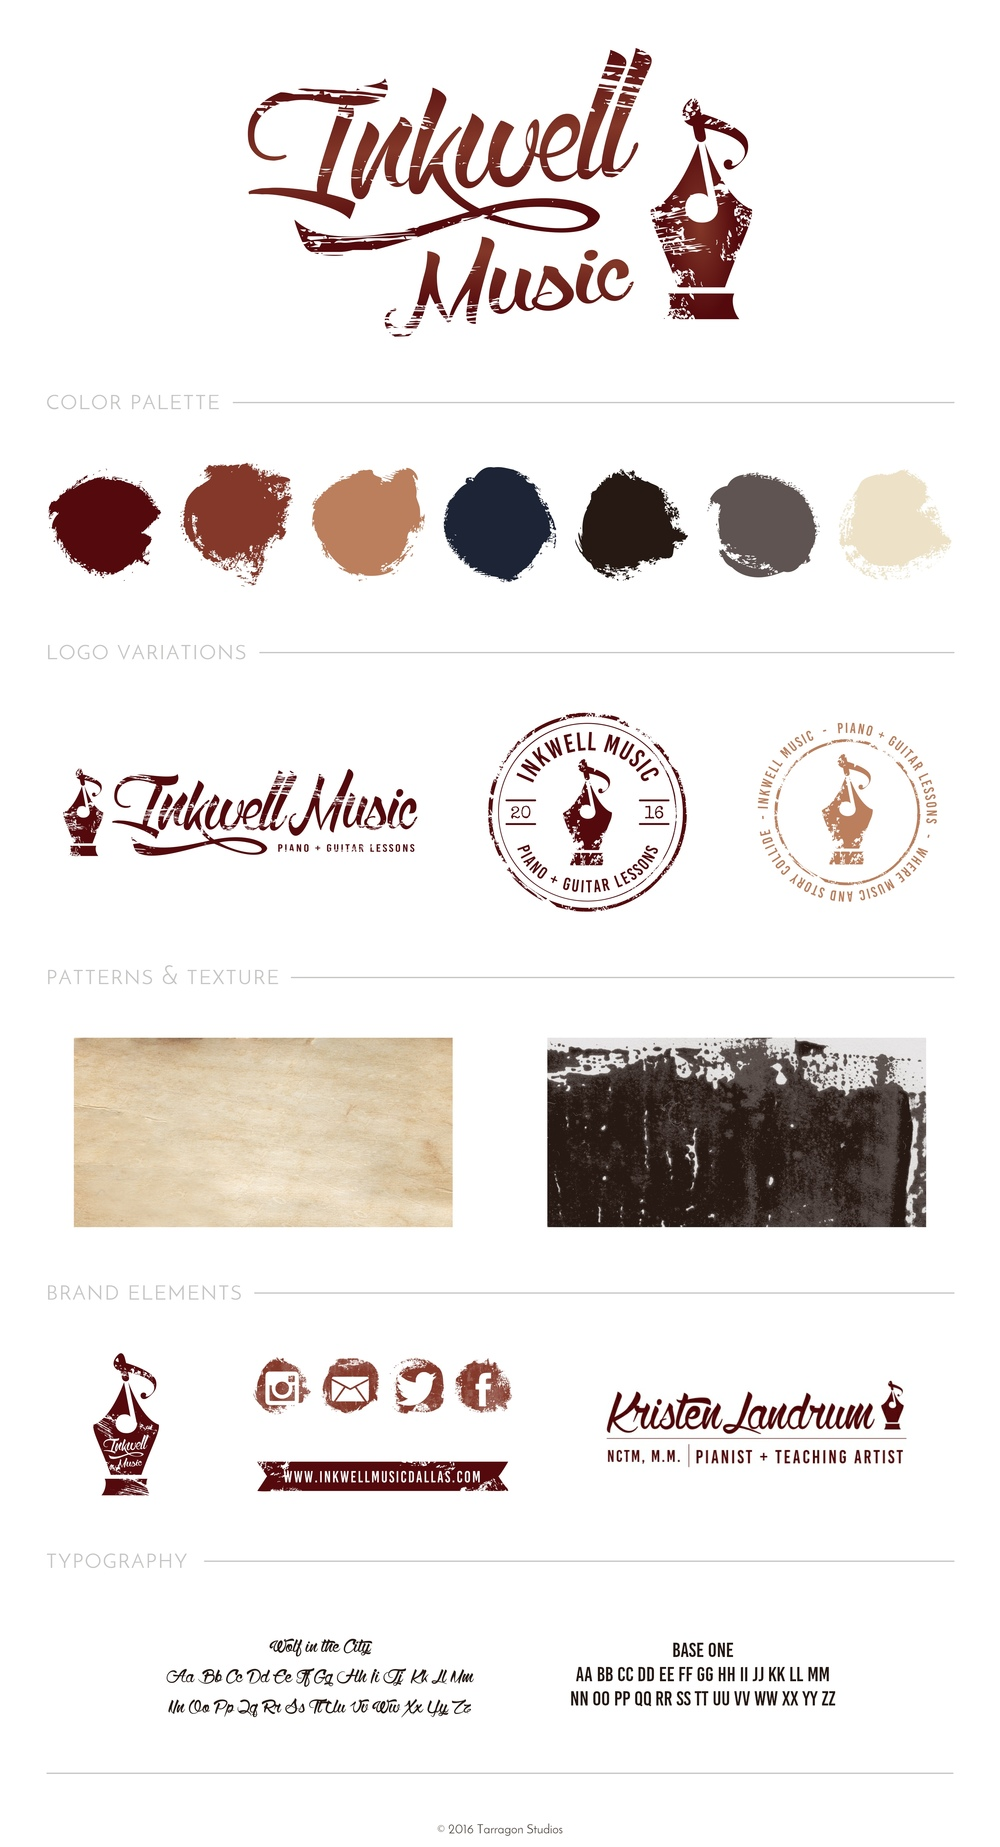 Logo design brand style guide vintage inkwell music